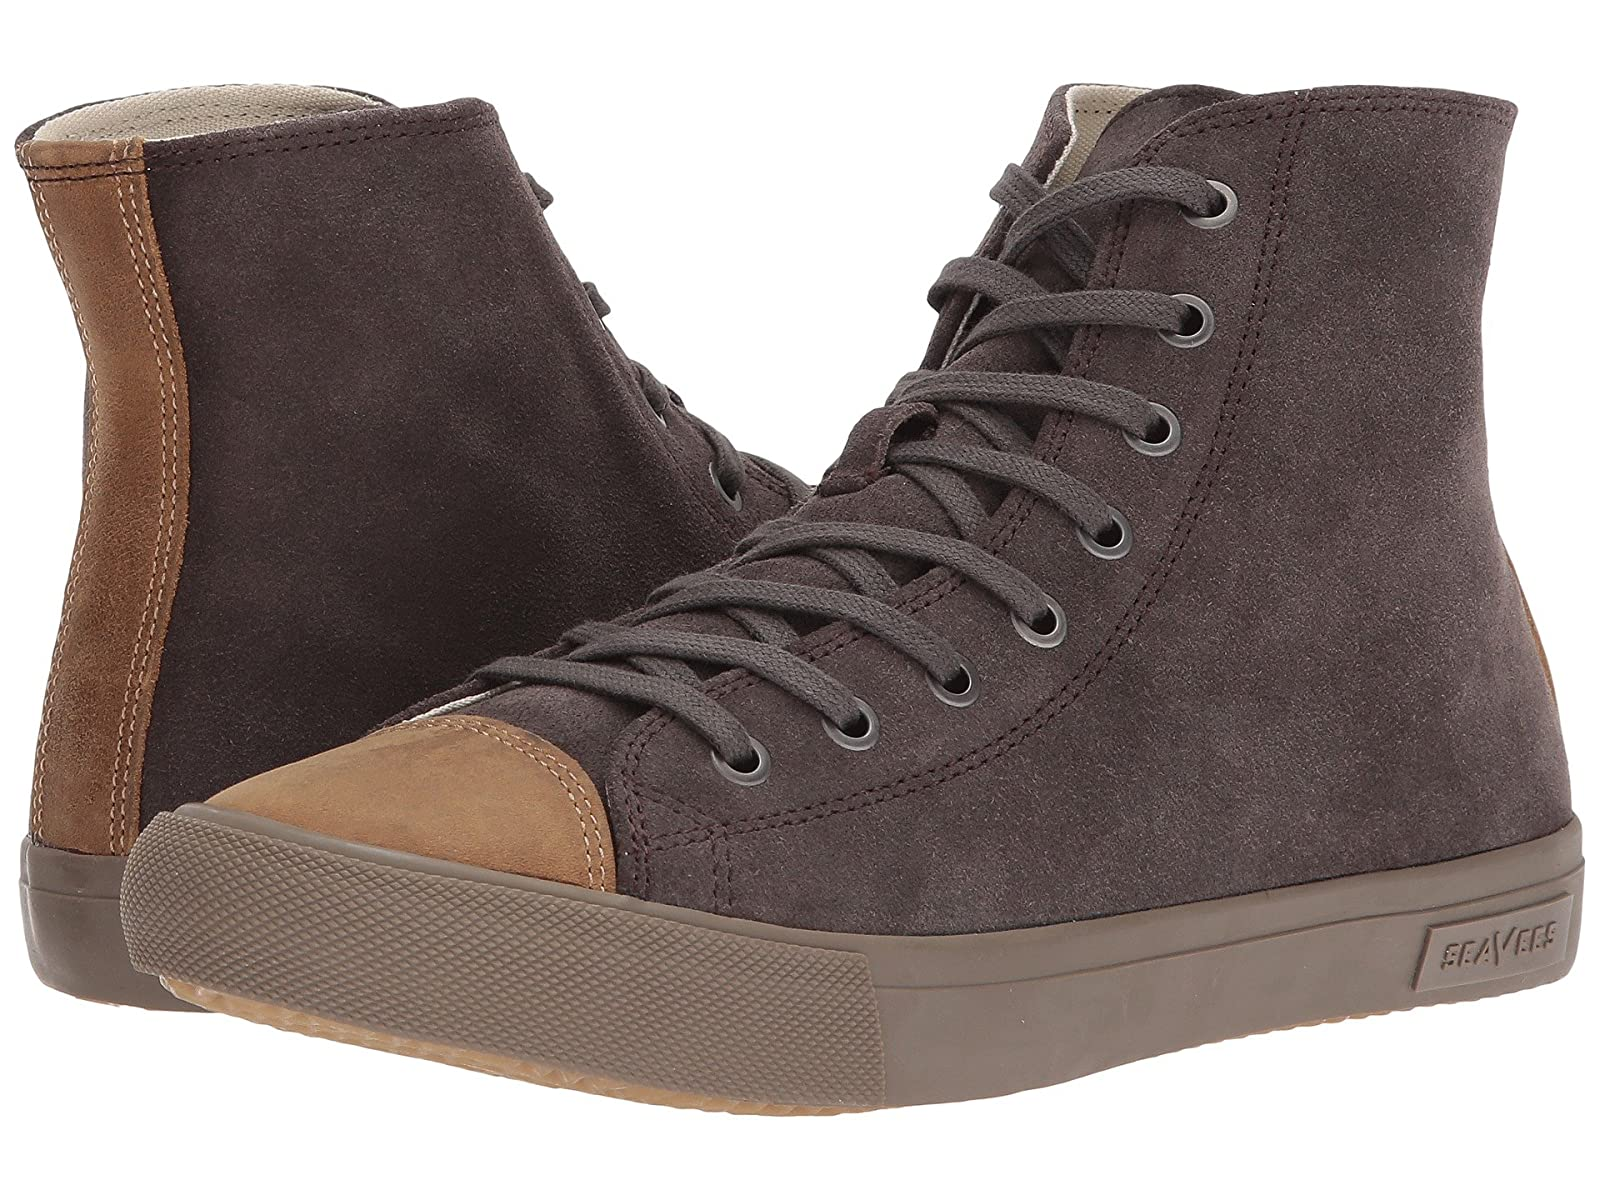 SeaVees Army Issue High WintertideCheap and distinctive eye-catching shoes